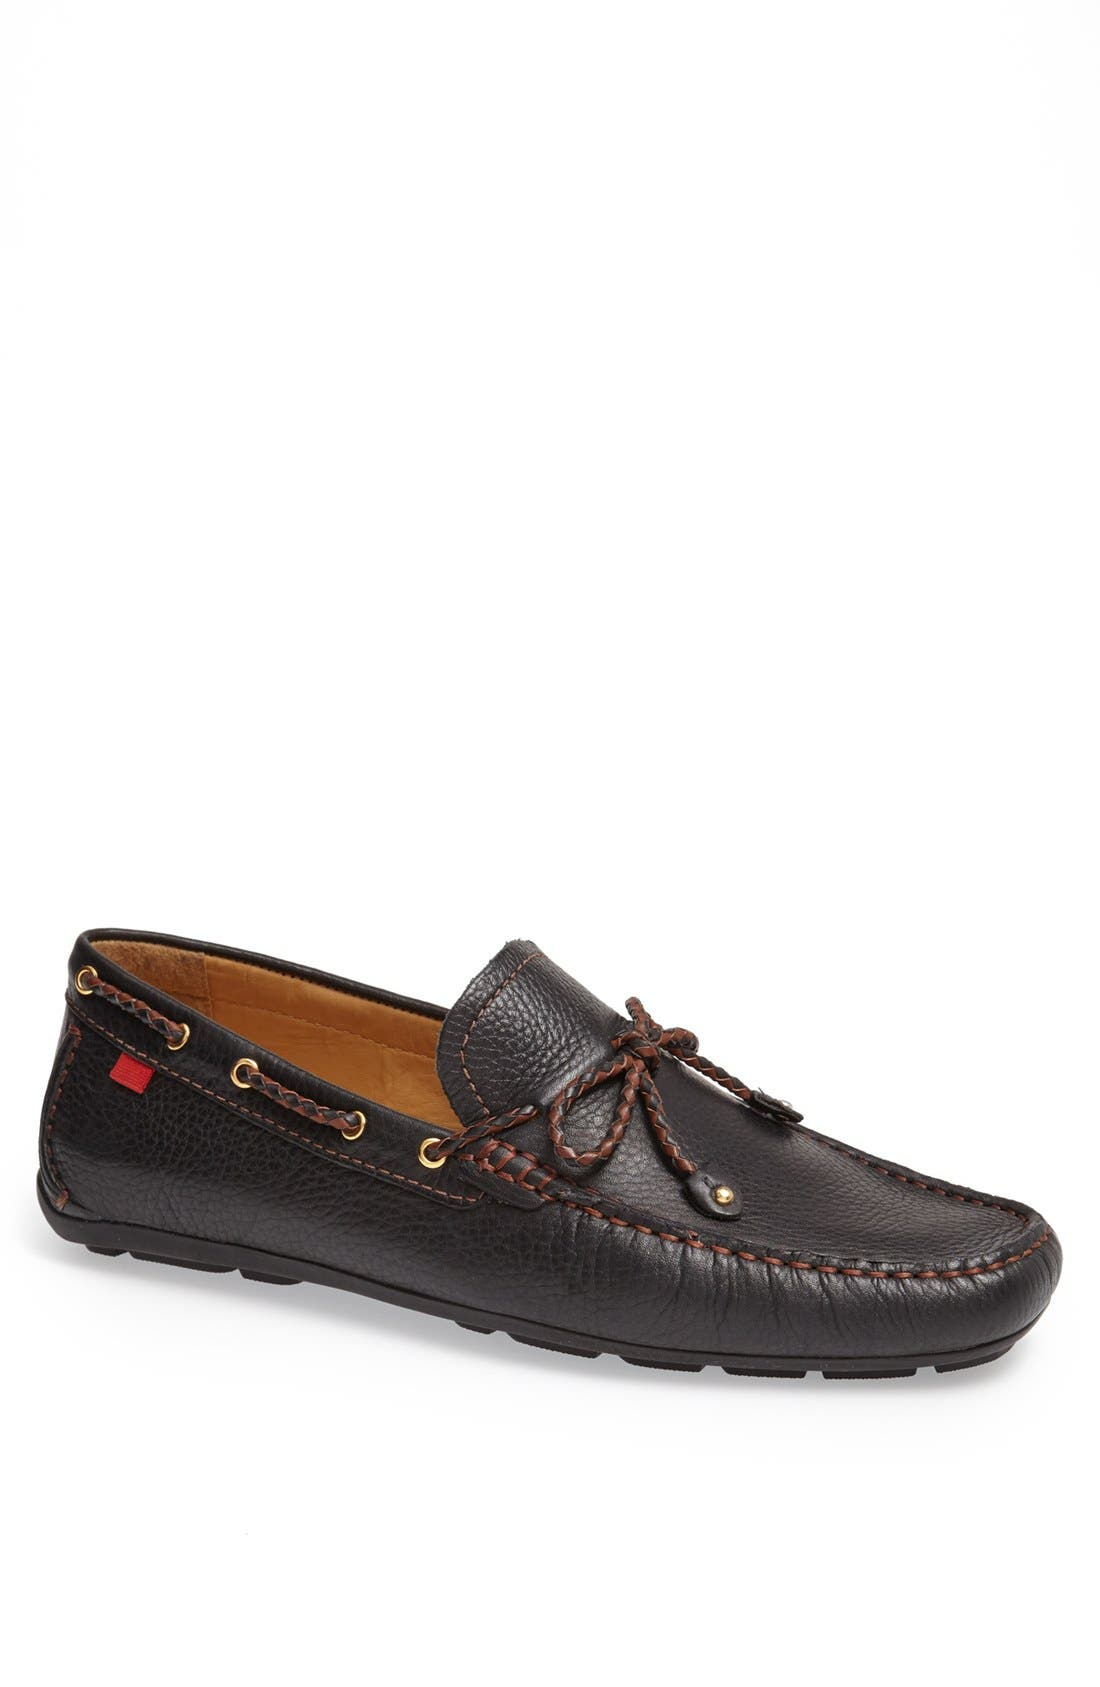 Marc Joseph New York 'Cypress Hill' Driving Shoe